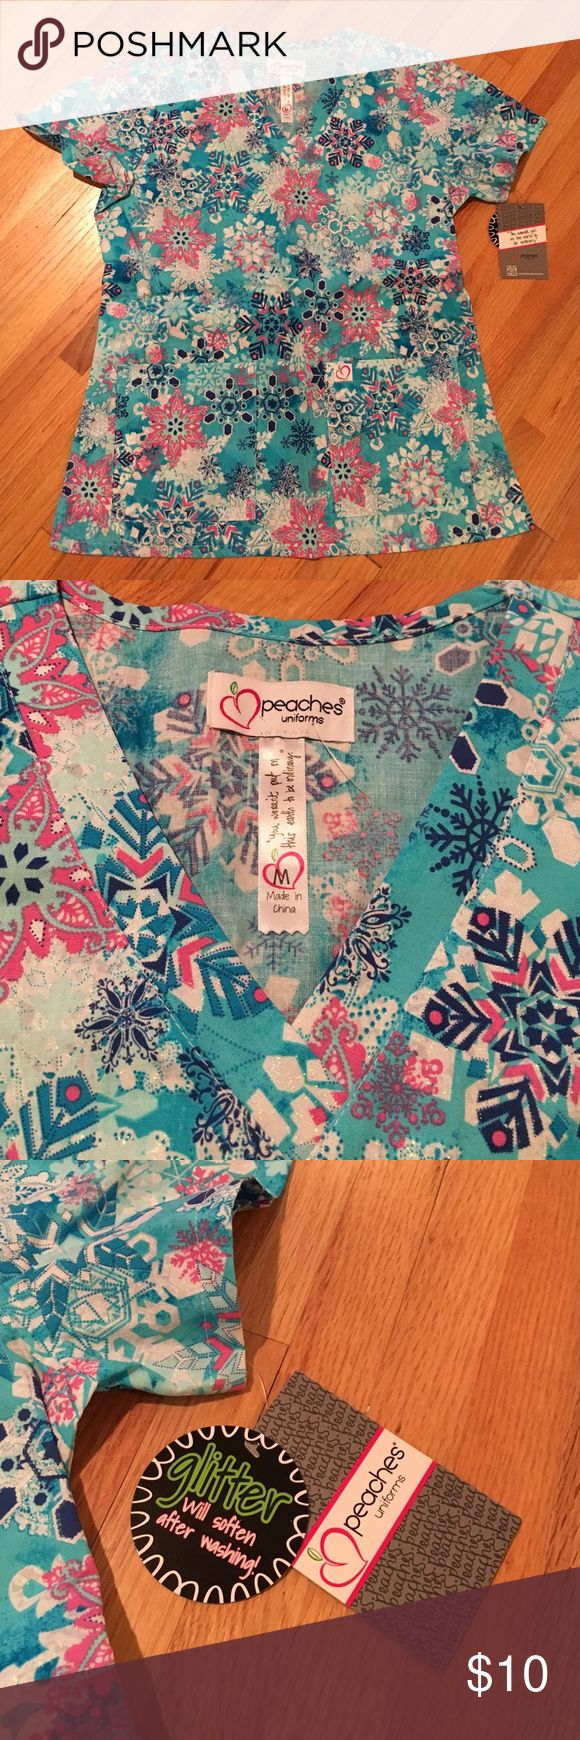 Peaches uniform scrub top New with tags!  Never worn!  Adorable sparkly winter scrub top! Tops